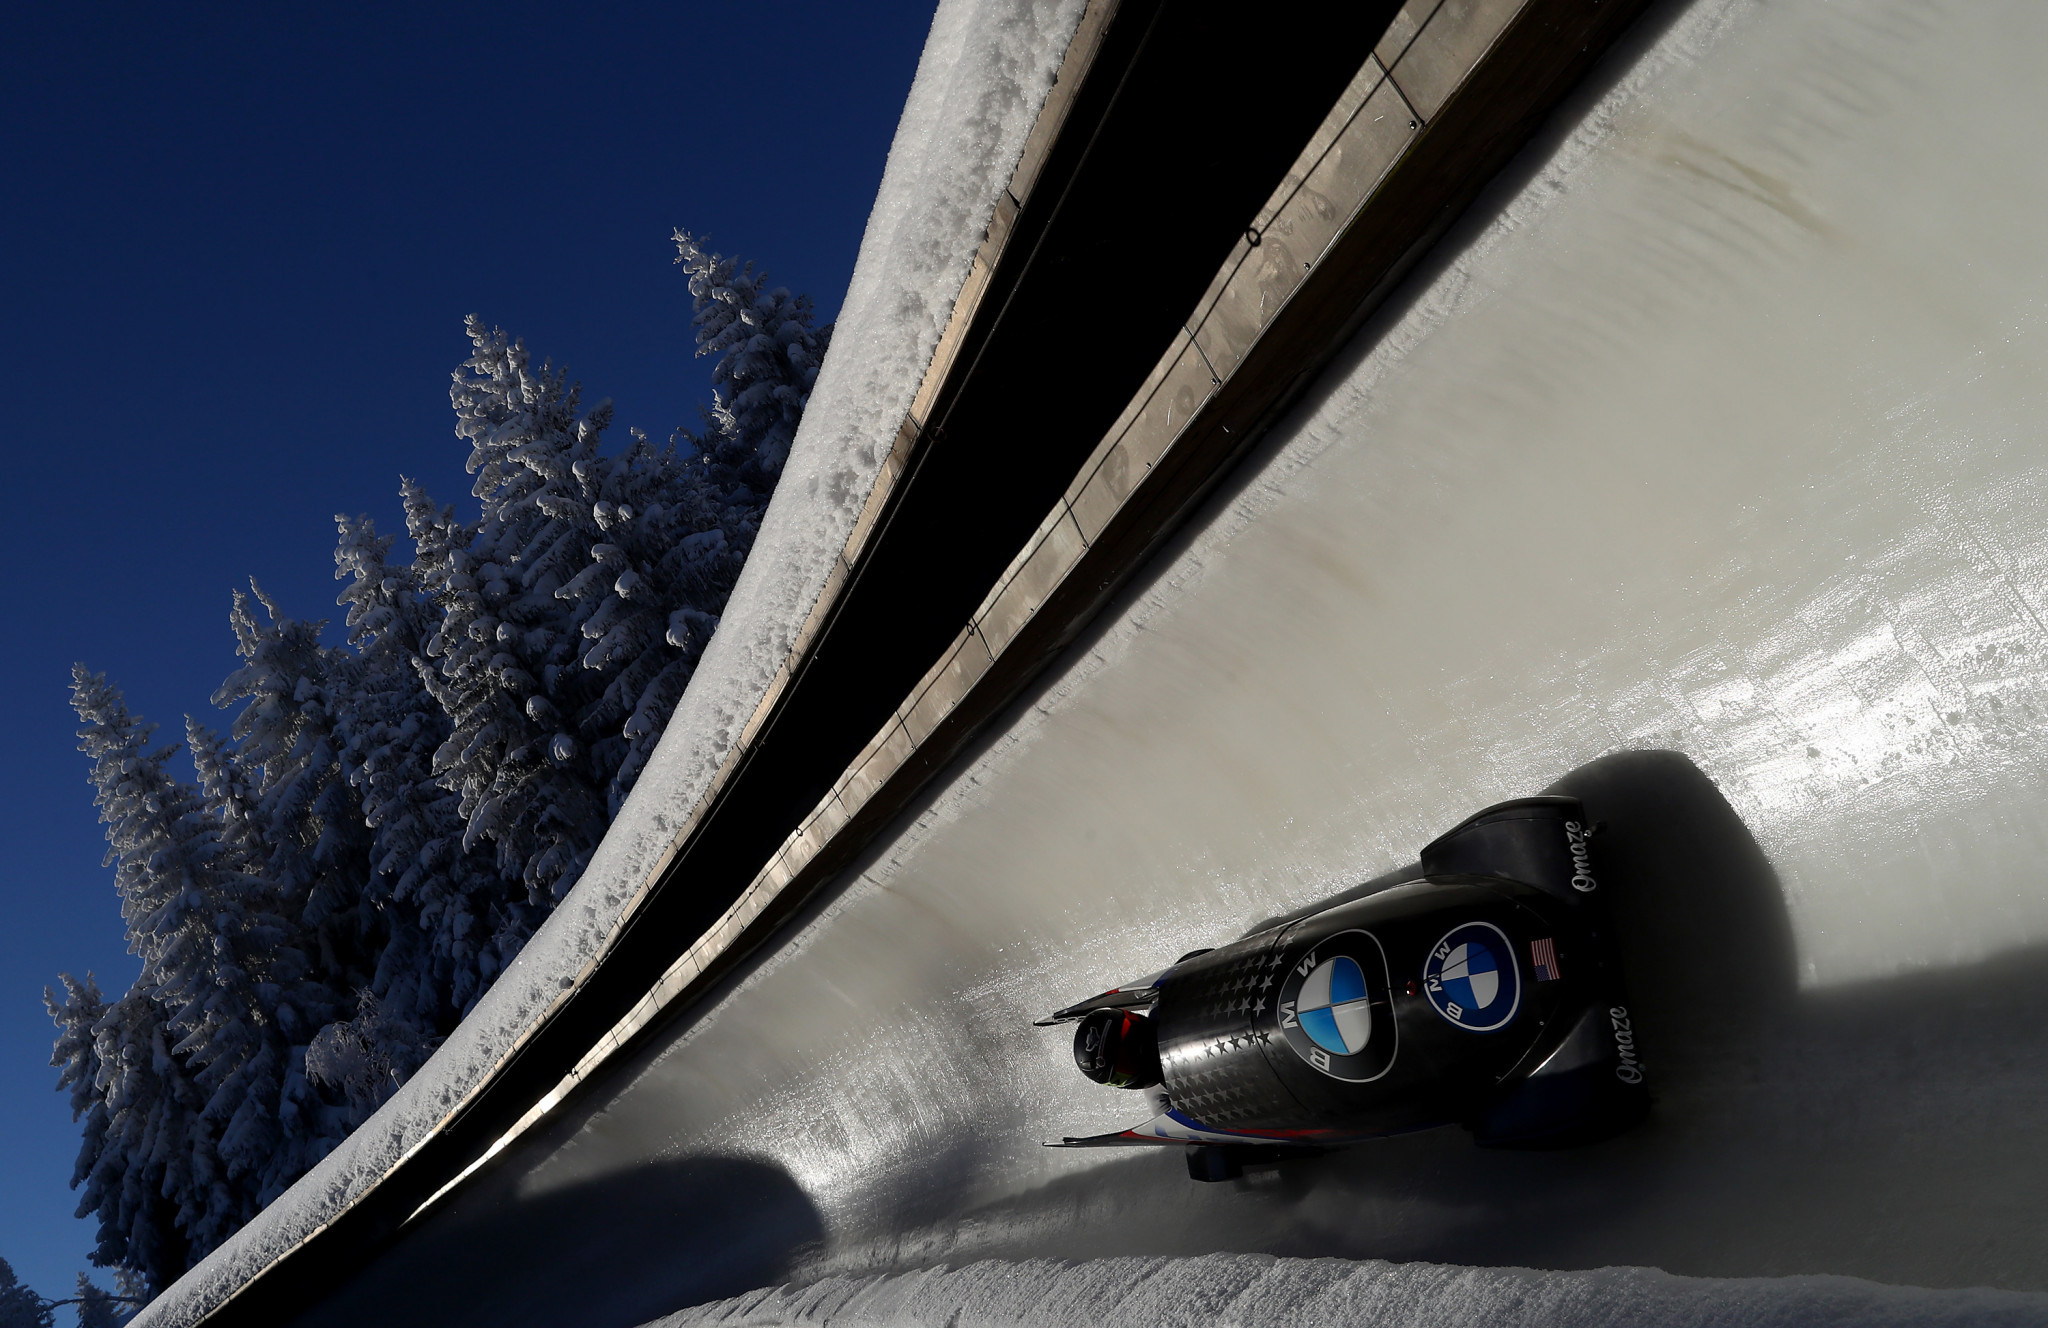 USA Bobsled and Skeleton launch online talent identification initiative with GMTM.com